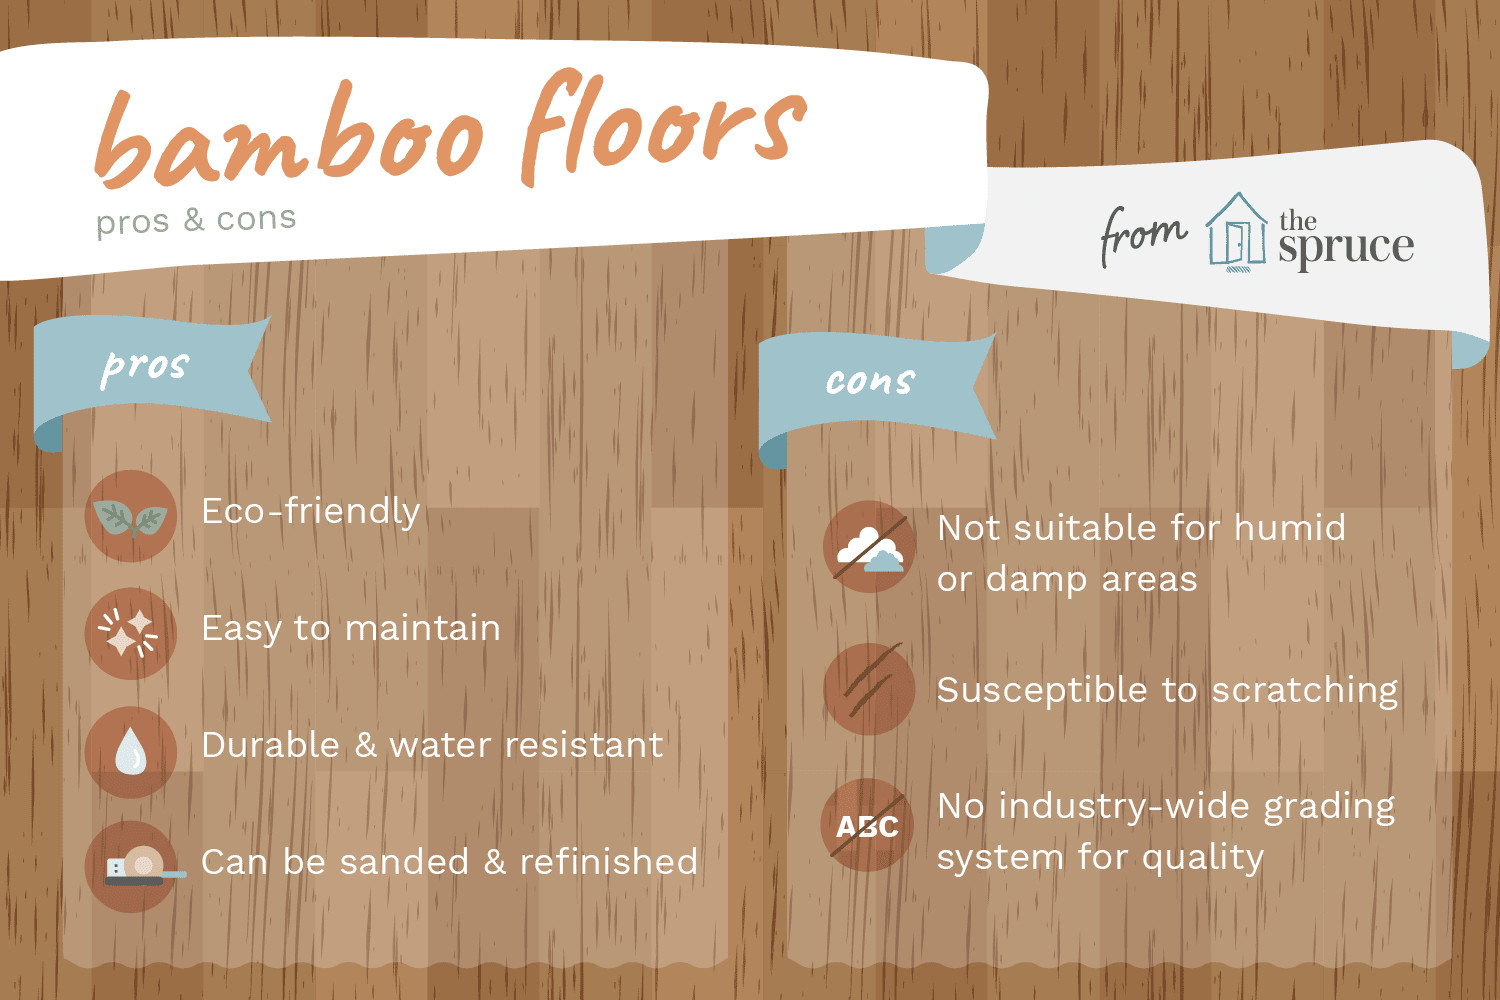 hardwood floor refinishing okc of the advantages and disadvantages of bamboo flooring for benefits and drawbacks of bamboo floors 1314694 v3 5b102fccff1b780036c0a4fa